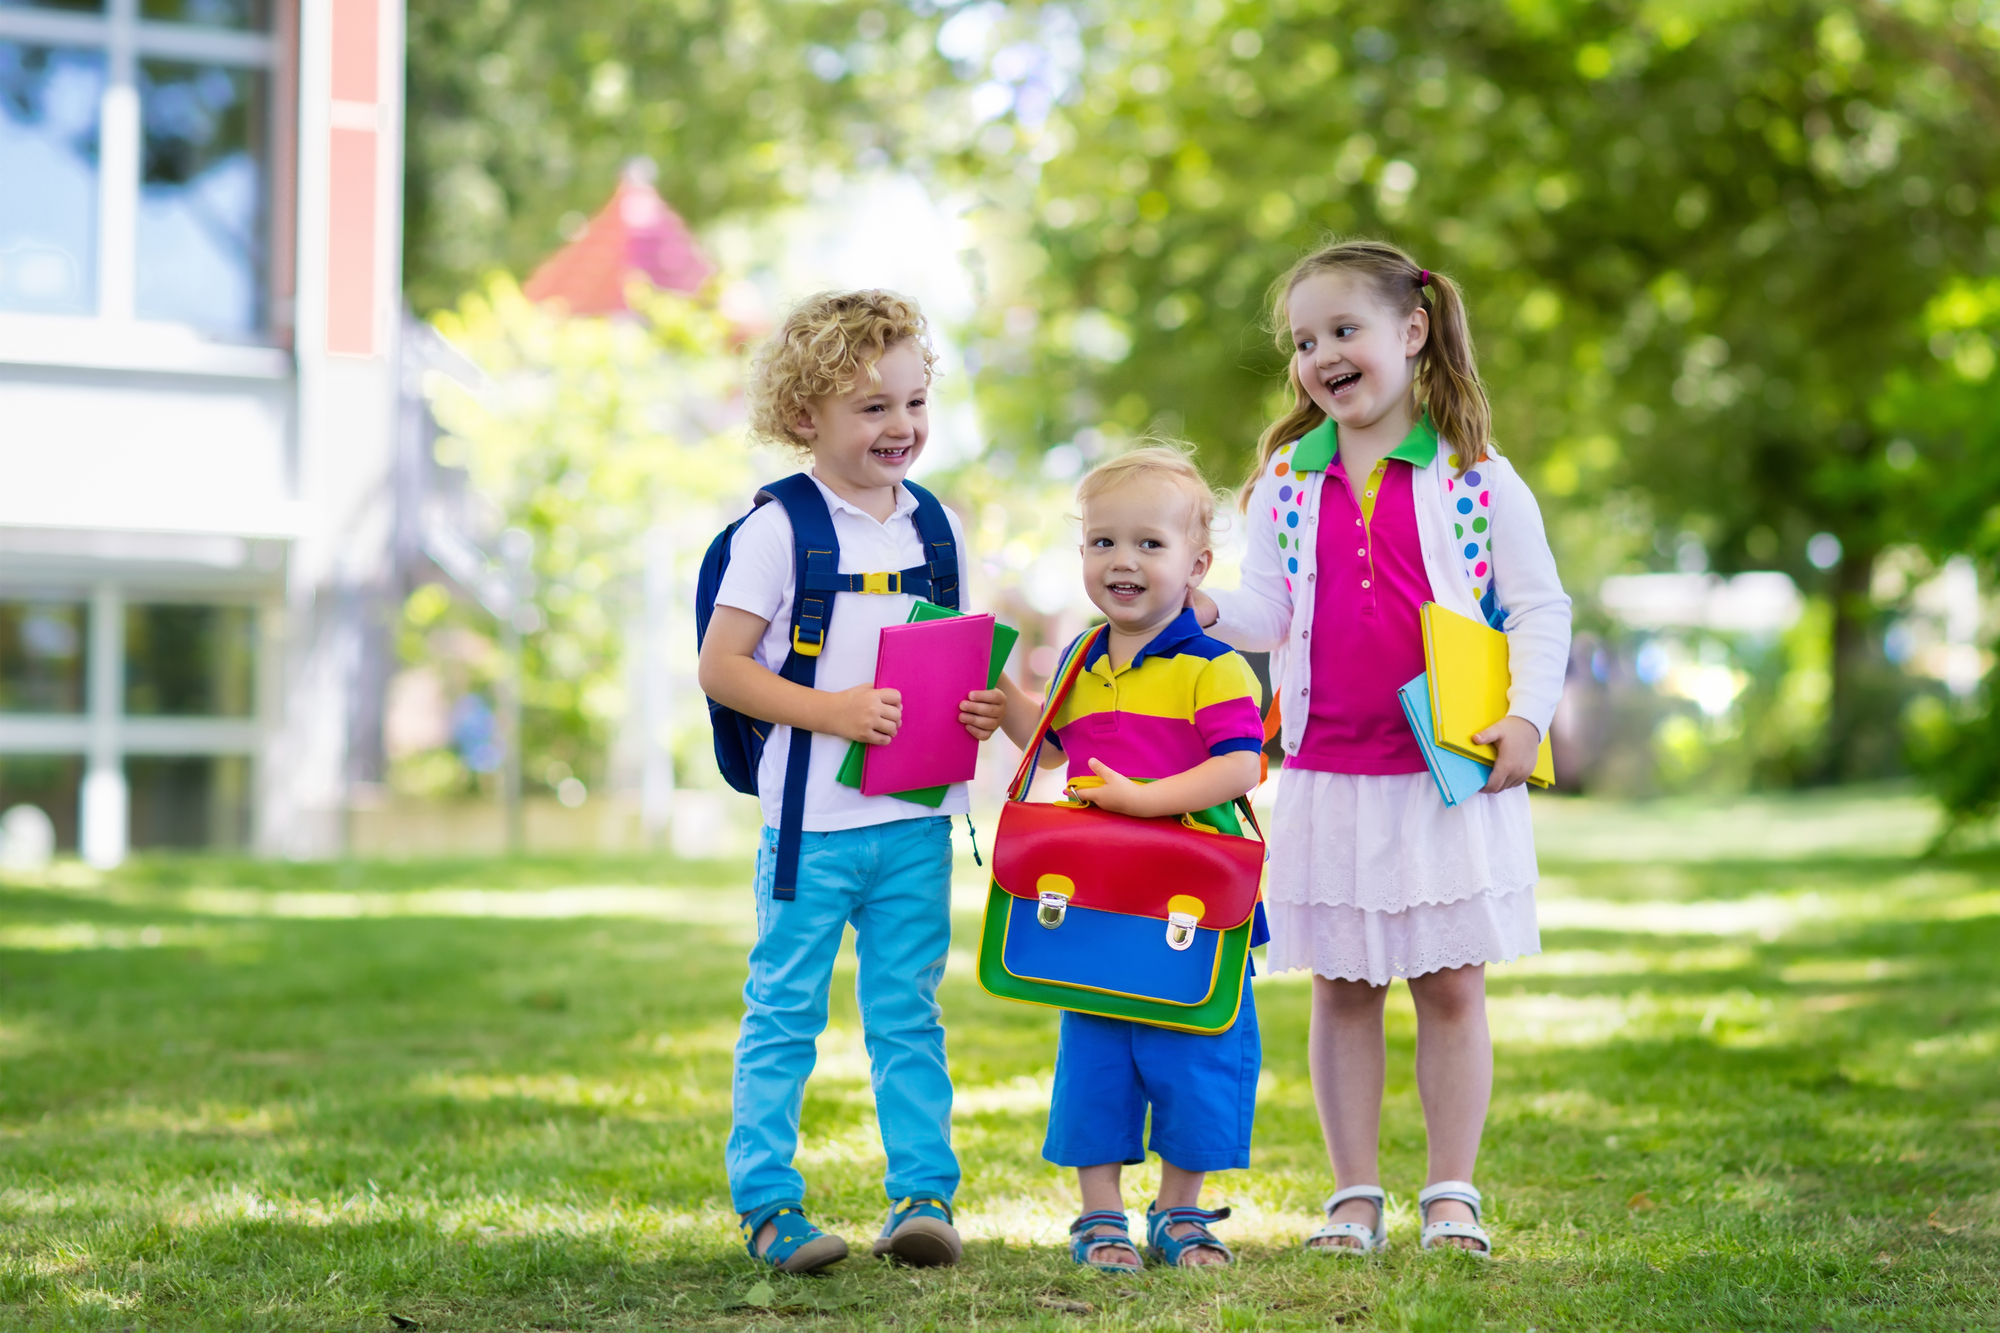 Preparing Your Child to Feel Comfortable at School